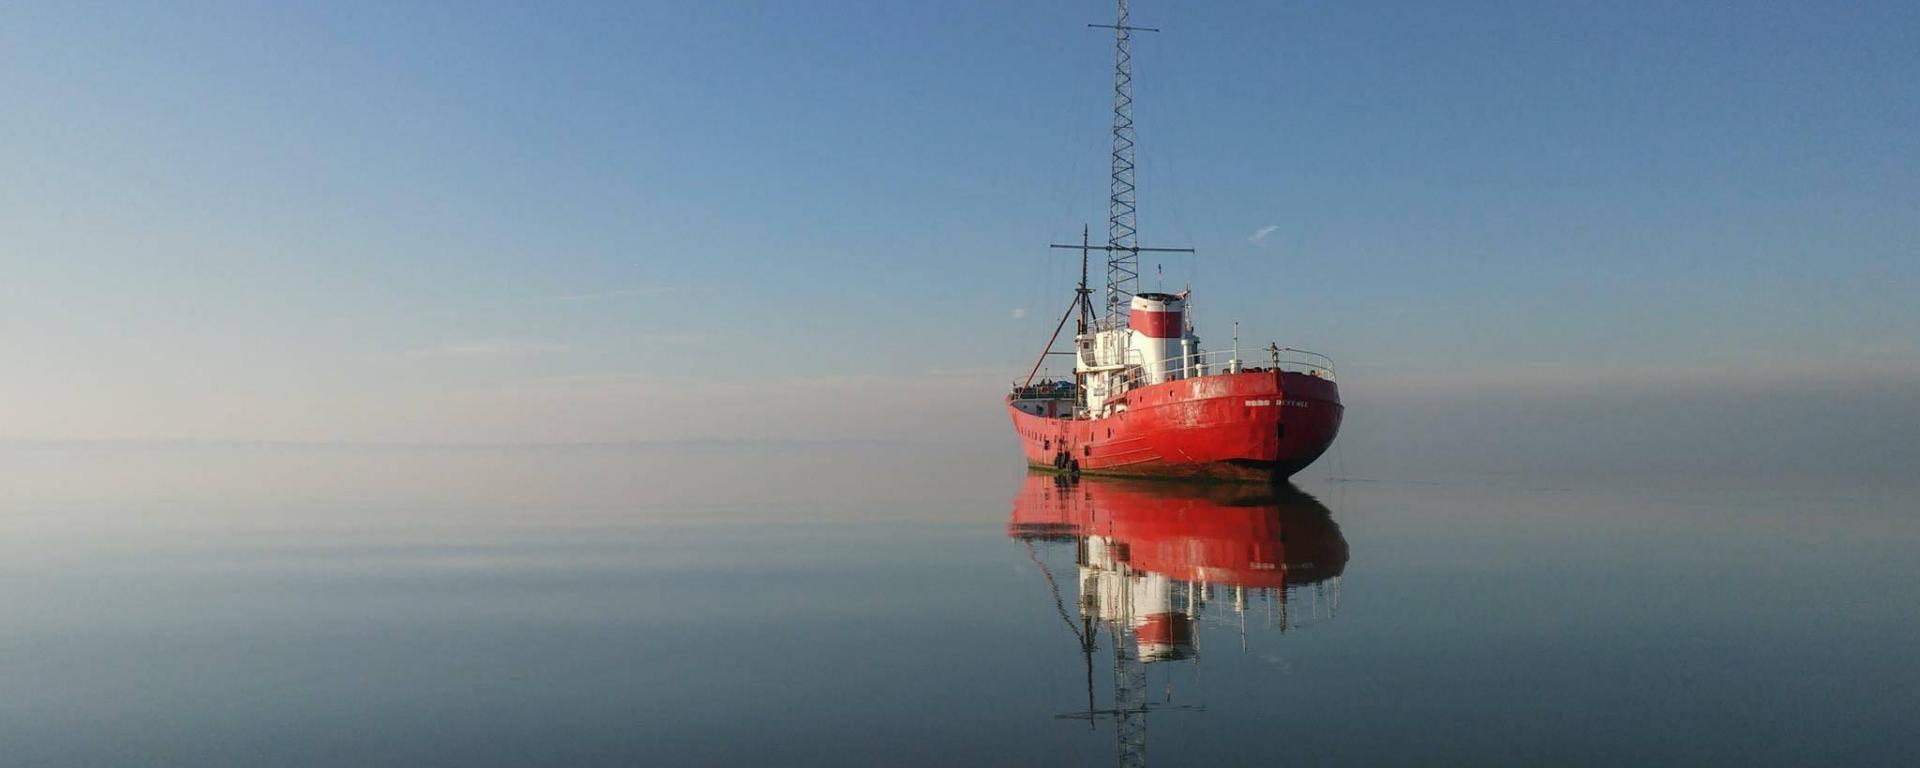 MV Ross Revenge the home of Radio Caroline 1